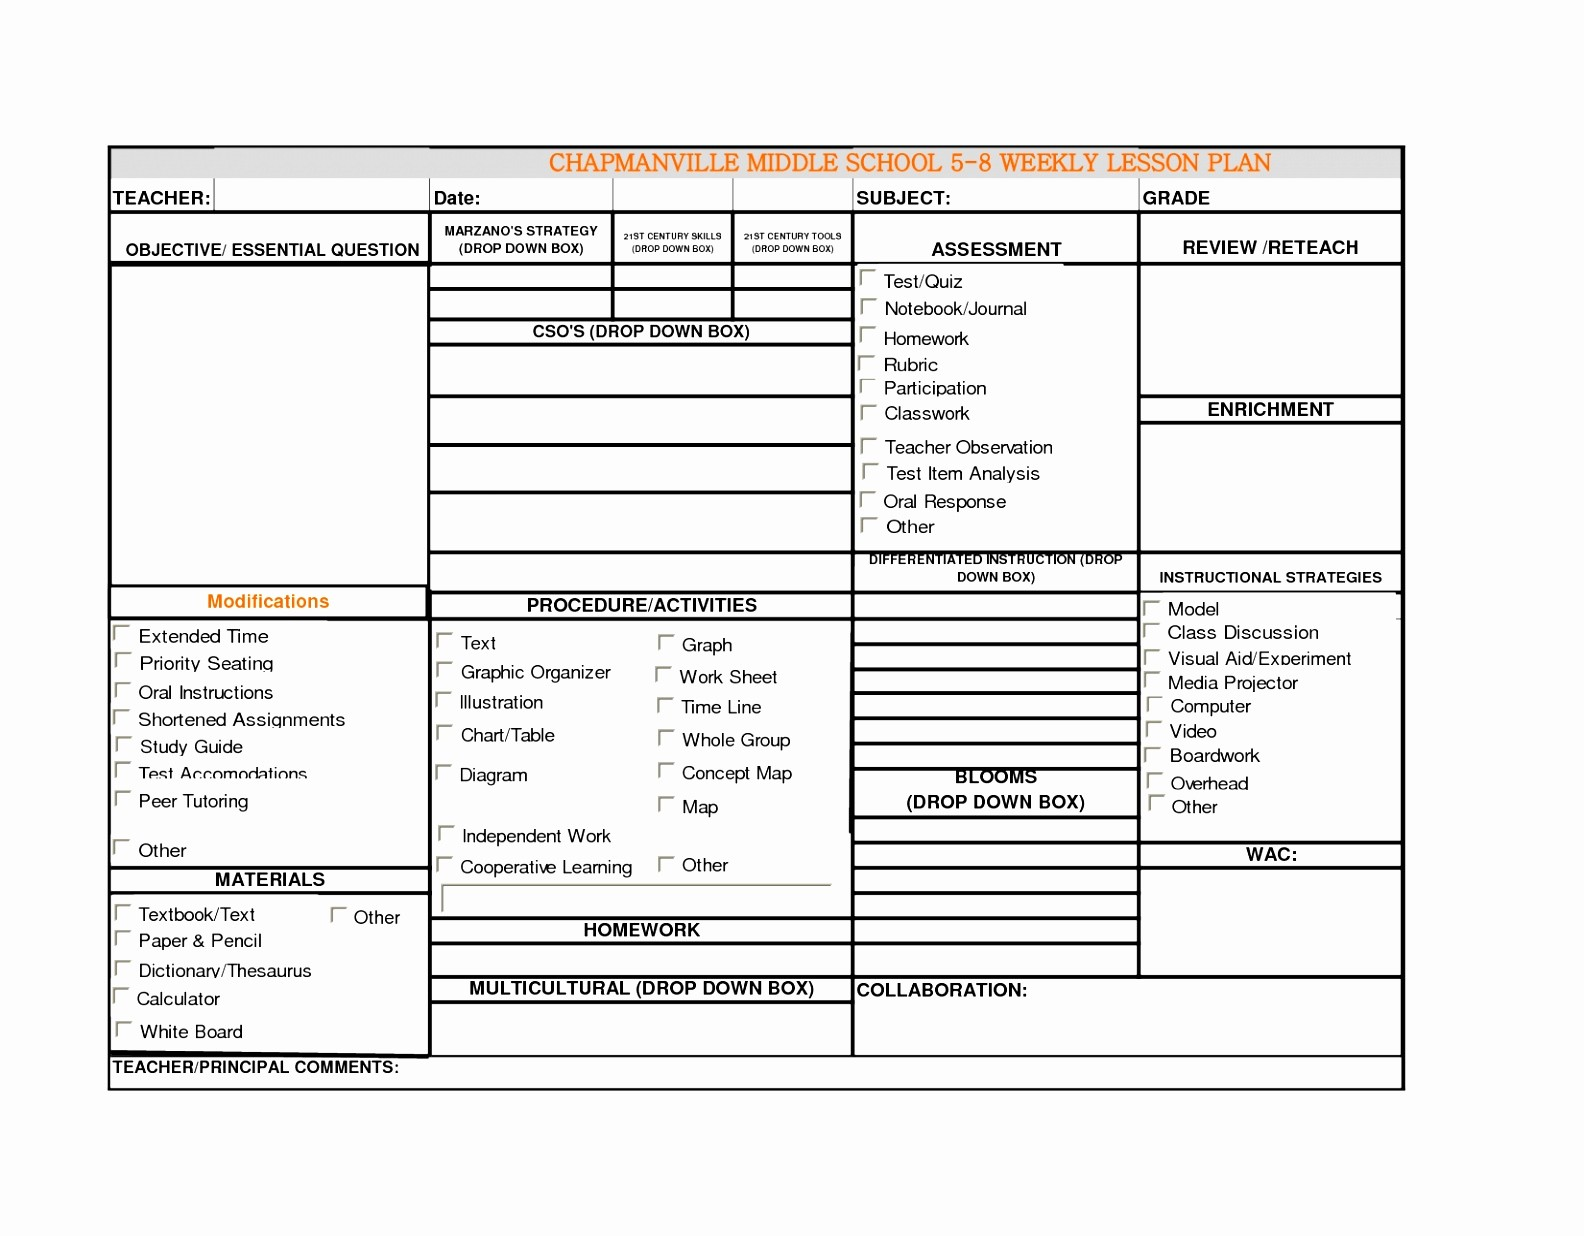 Teacher Weekly Lesson Plan Template Luxury 7 Weekly Lesson Plan Template Excel Eoowu